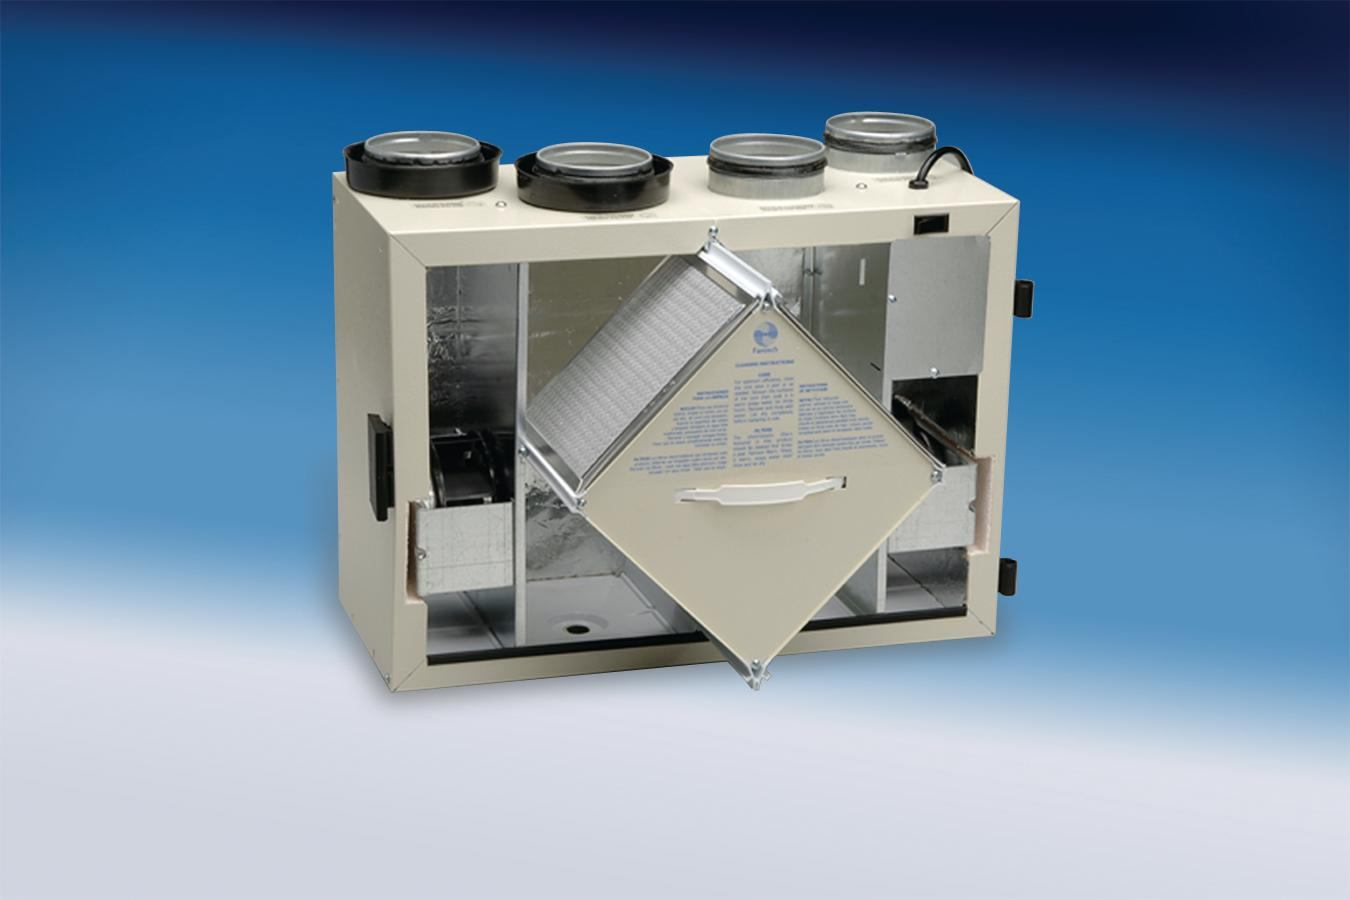 Vhr 1404 Heat Recovery Ventilator From Fantech